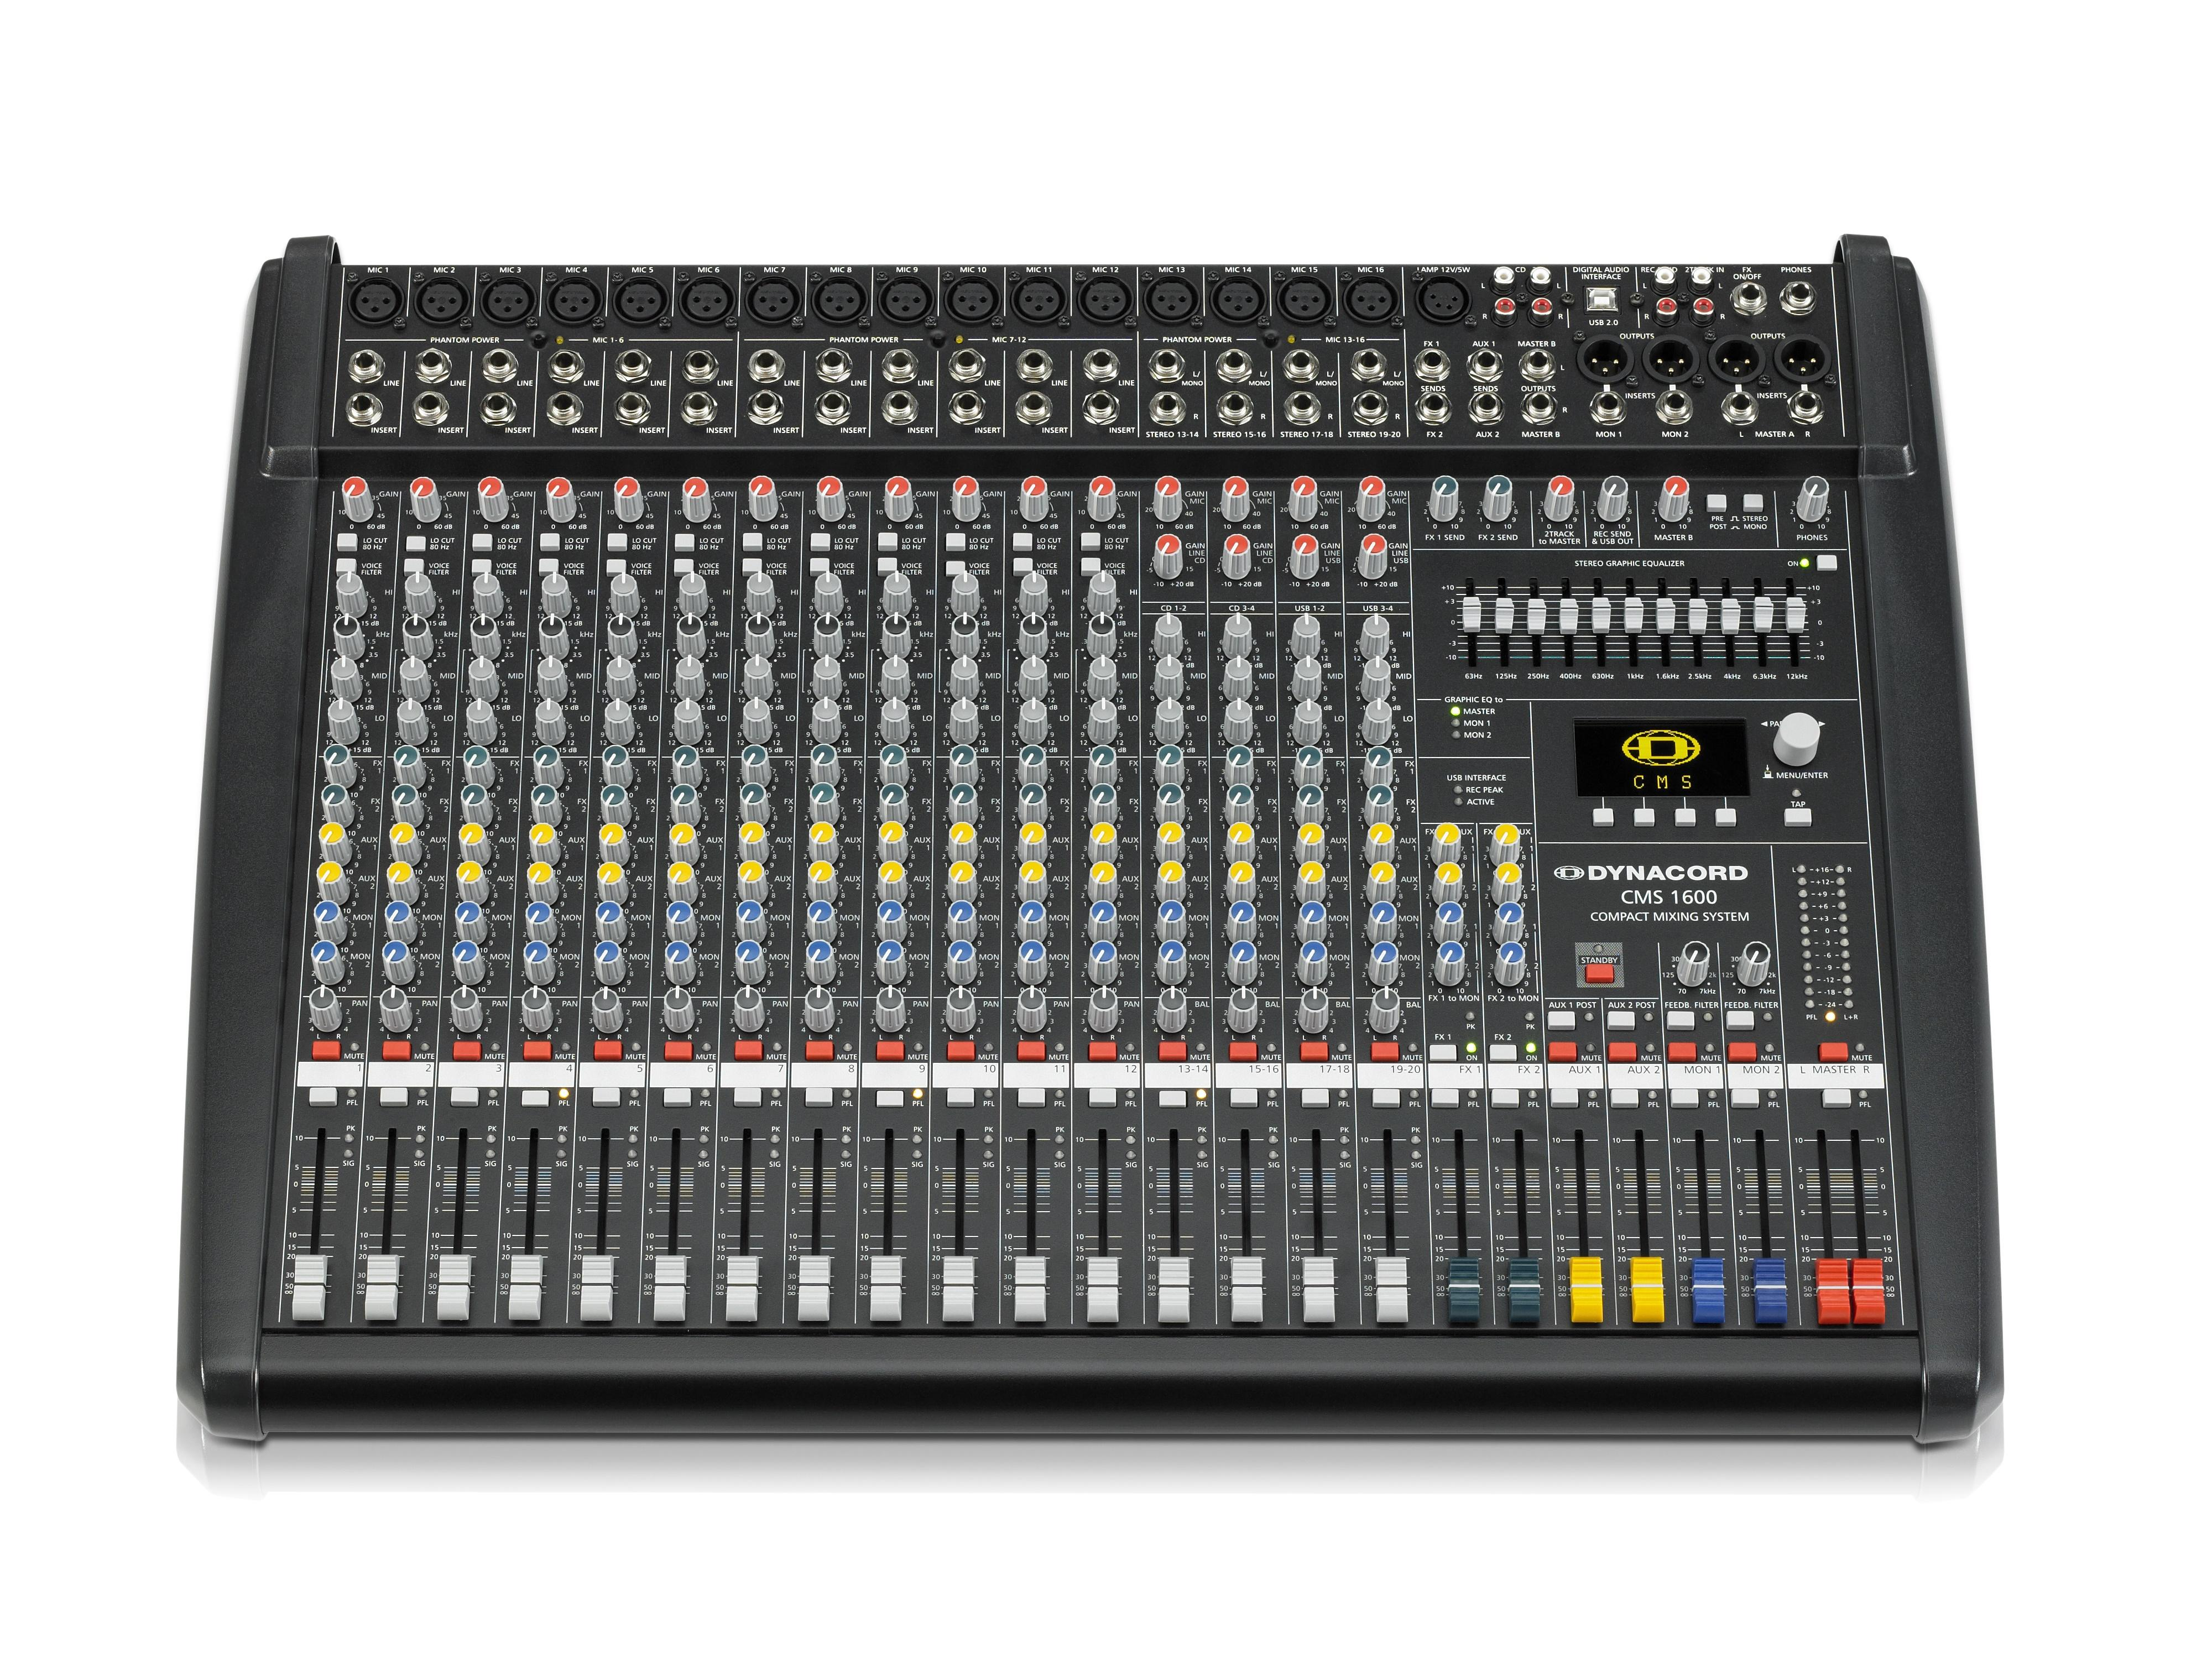 DCCMS16003MIG 12 Mic/Line w 4 Mic/Stereo Line Channels/6 x AUX/Dual 24 bit Stereo Effects/USB-Audio Interface by Dynacord